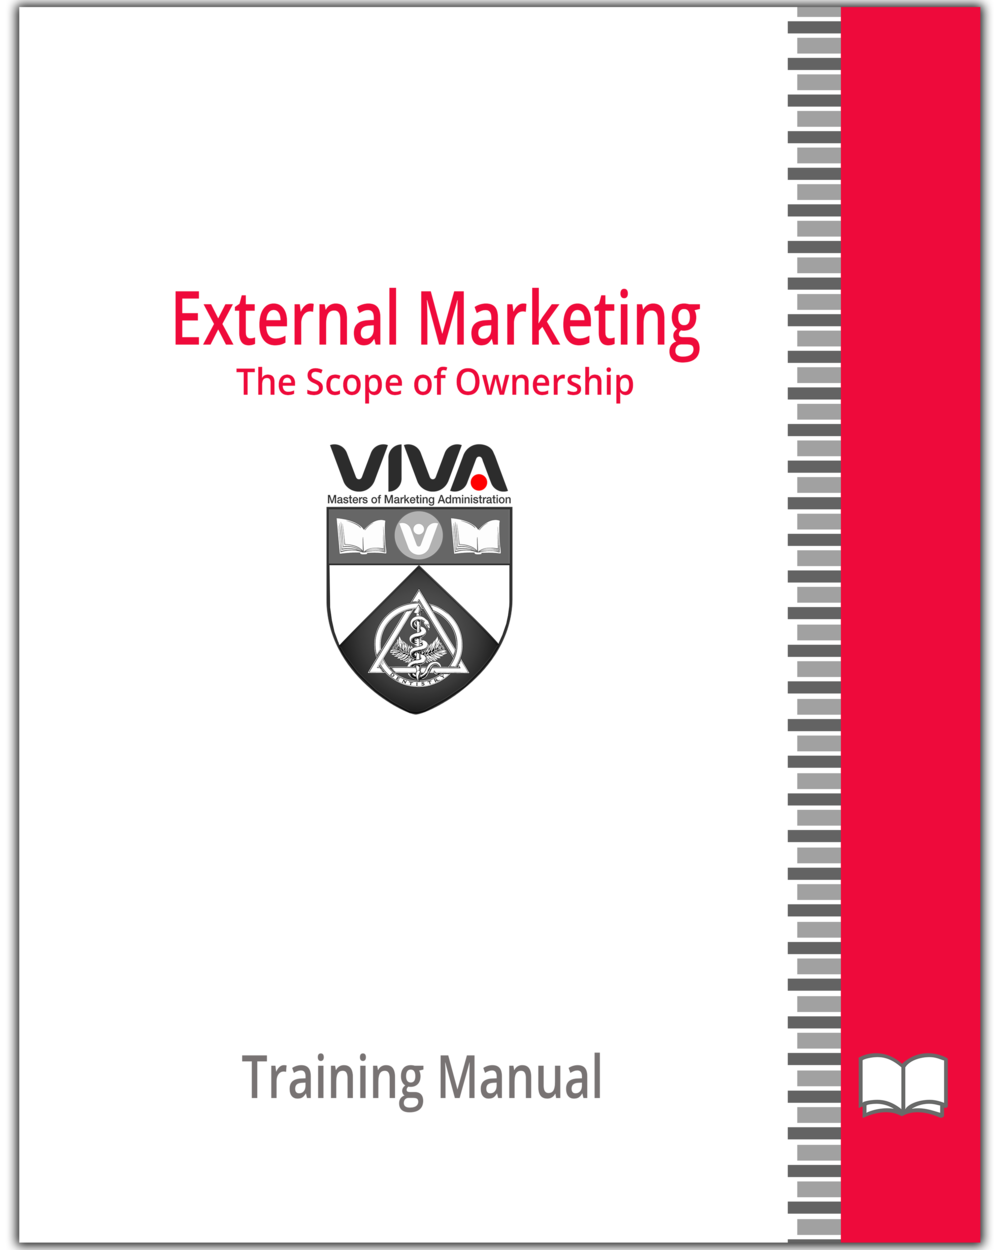 Ext Marketing Shadowed Cover.png